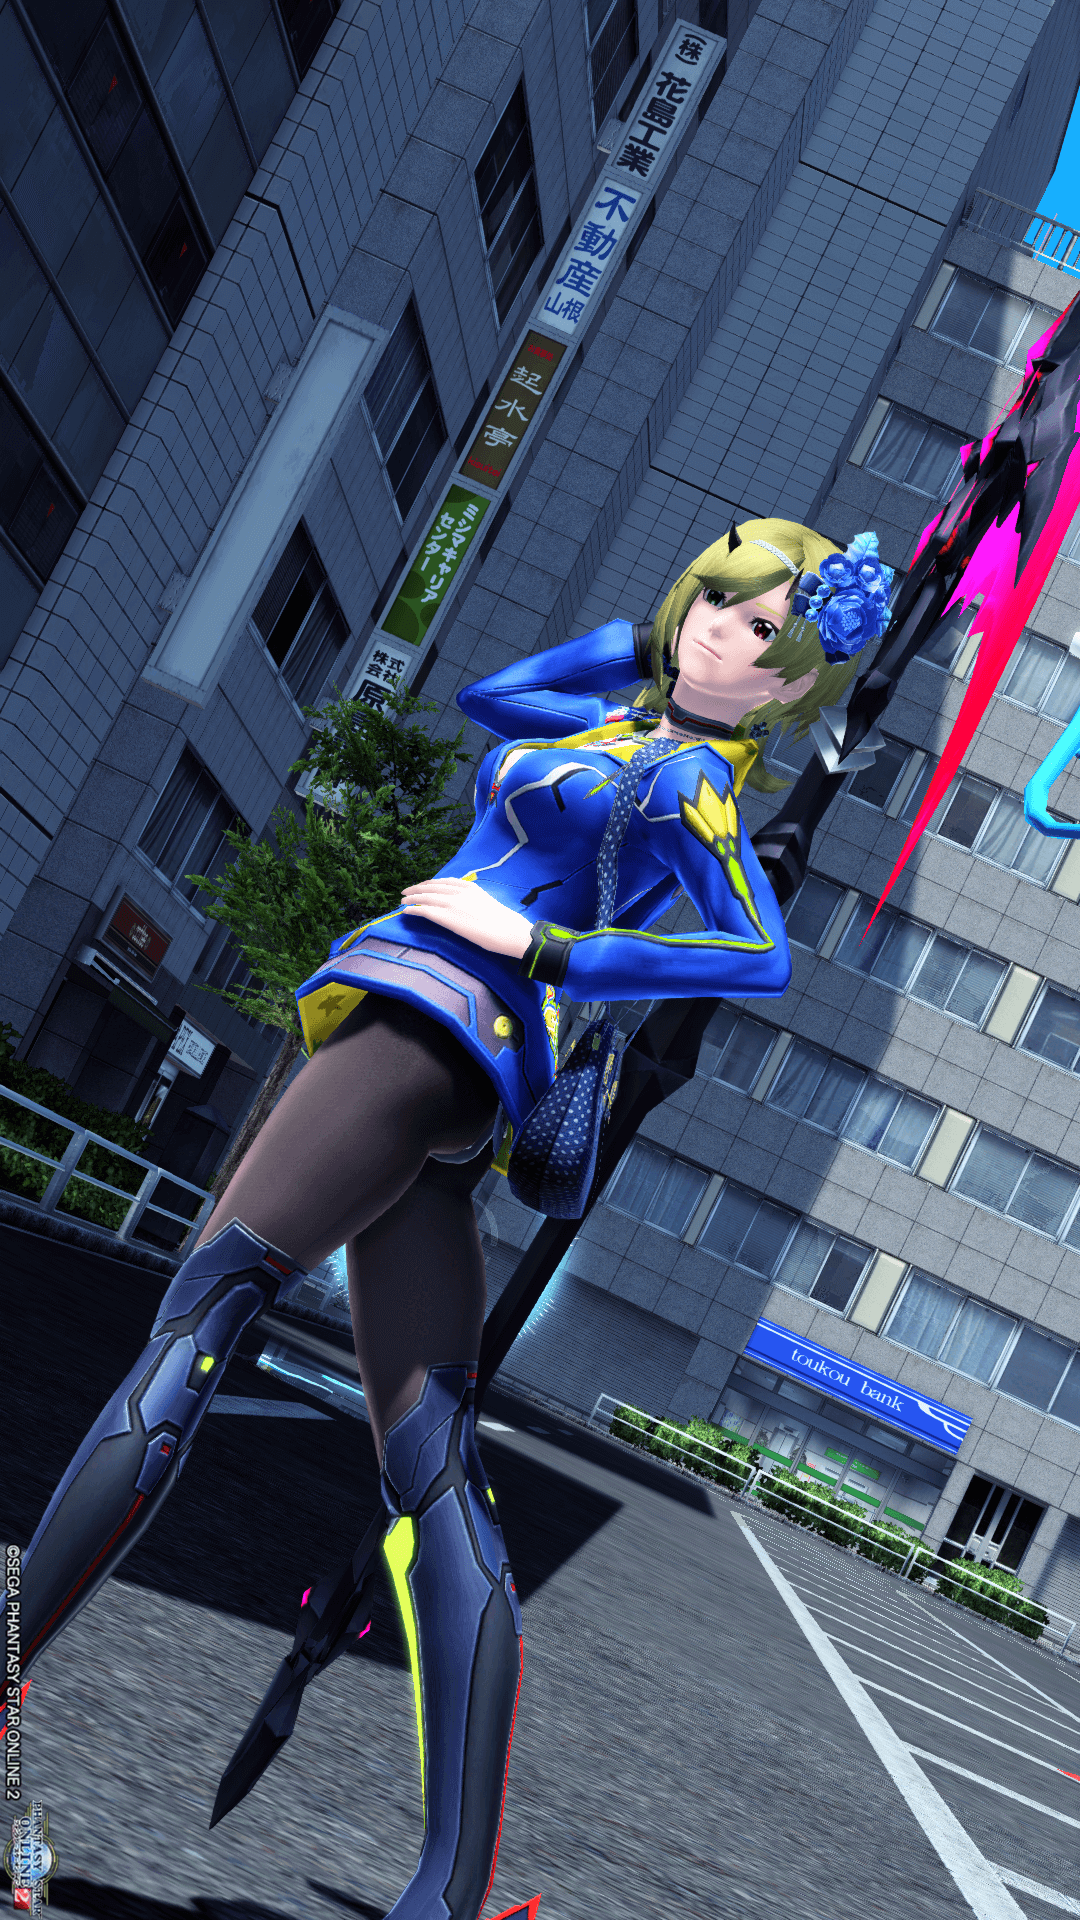 pso20160426_162100_000.png